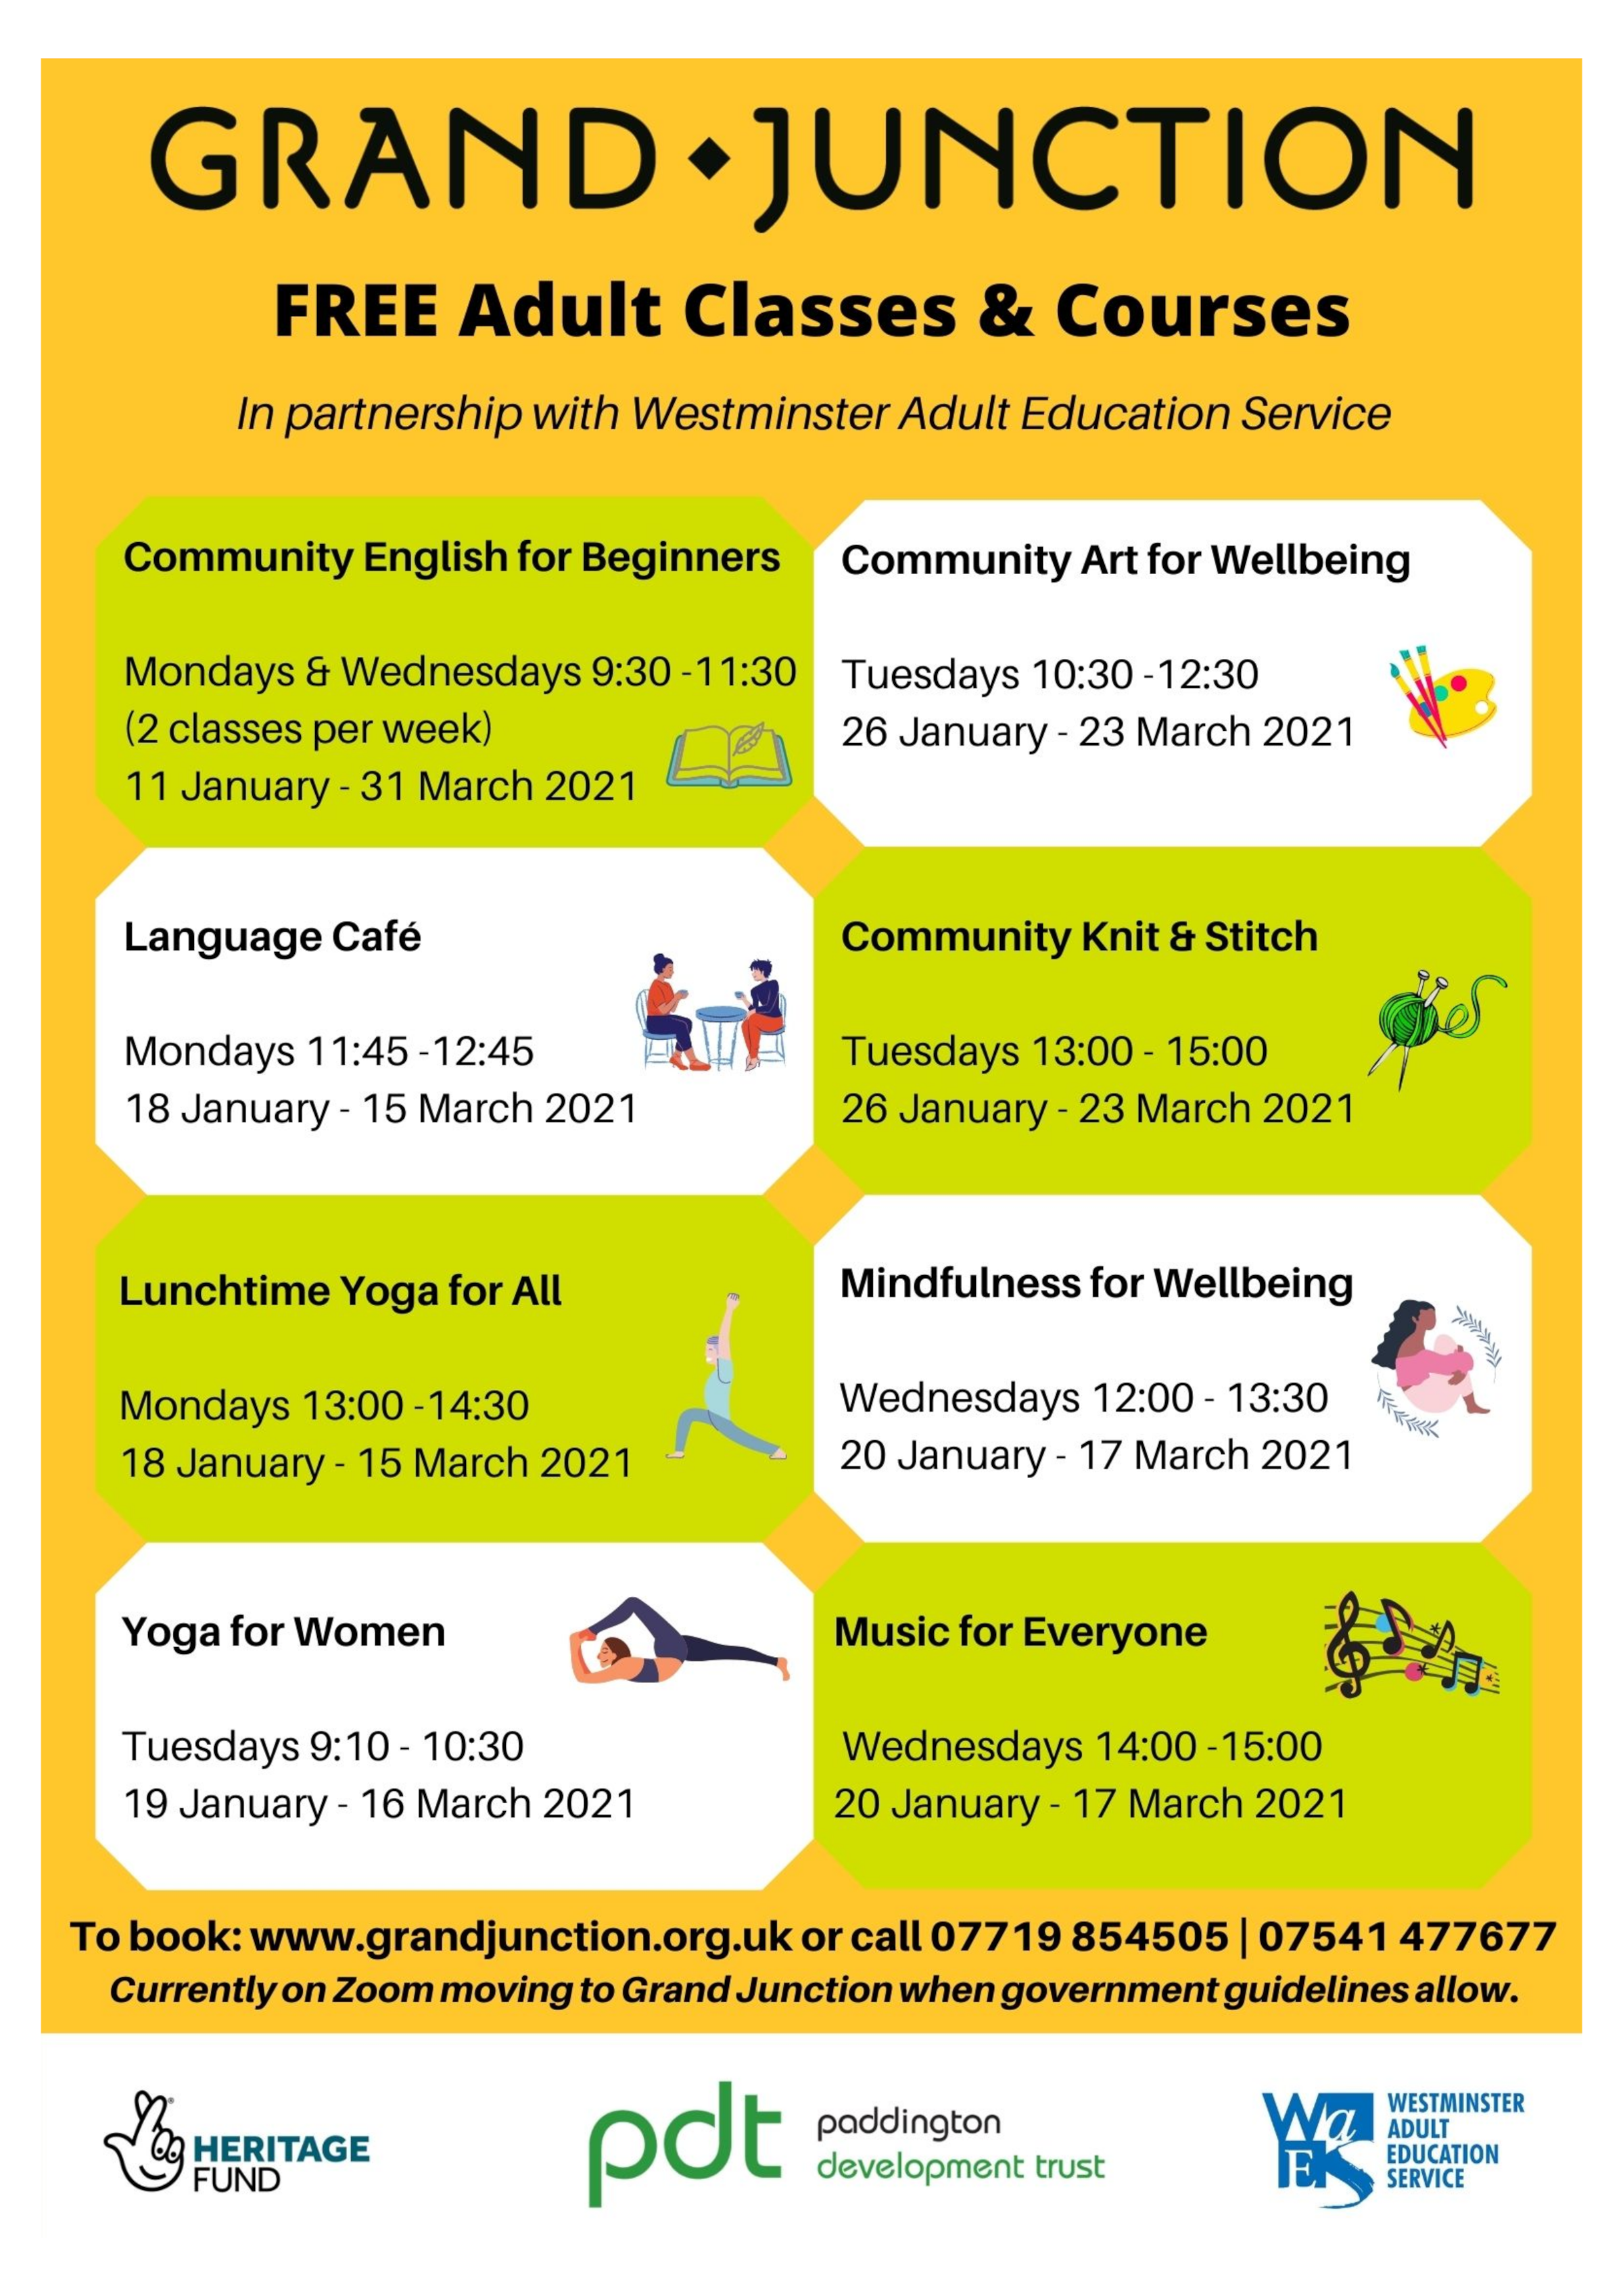 FREE Adult Classes & Courses  In partnership with Westminster Adult Education Service  Community English for Beginners Mondays & Wednesdays 9:30 - 11:30  ( 2 class per week ) 11 January - 31 March 2021  Language Café Mondays 11:45 - 12:45  18 January - 15 March 2021  Lunchtime Yoga for All Mondays 13:00 - 14:30 18th January - 15 March 2021  Yoga for Women Tuesdays 9:10 - 10:30 19 January - 16 March 2021  Community Art for Wellbeing Tuesday 10:30 - 12:30 19 January - 16 March 2021  Community Knit & Stitch Tuesdays 13:00 - 15:00 19 January - 16 March 2021  Mindfulness for Wellbeing Wednesdays 12:00 - 13:30 20 January - 17 March 2021  Music for Everyone Wednesdays 14:00 - 15:00 13 January - 10 March 2021  Full details: www.grandjunction.org.uk  Or call 07719 854505 or 07541 477077  All classes are in-person & online ST MARY MAGDALENE CHURCH ROWINGTON CLOSE LONDON W2 5TF